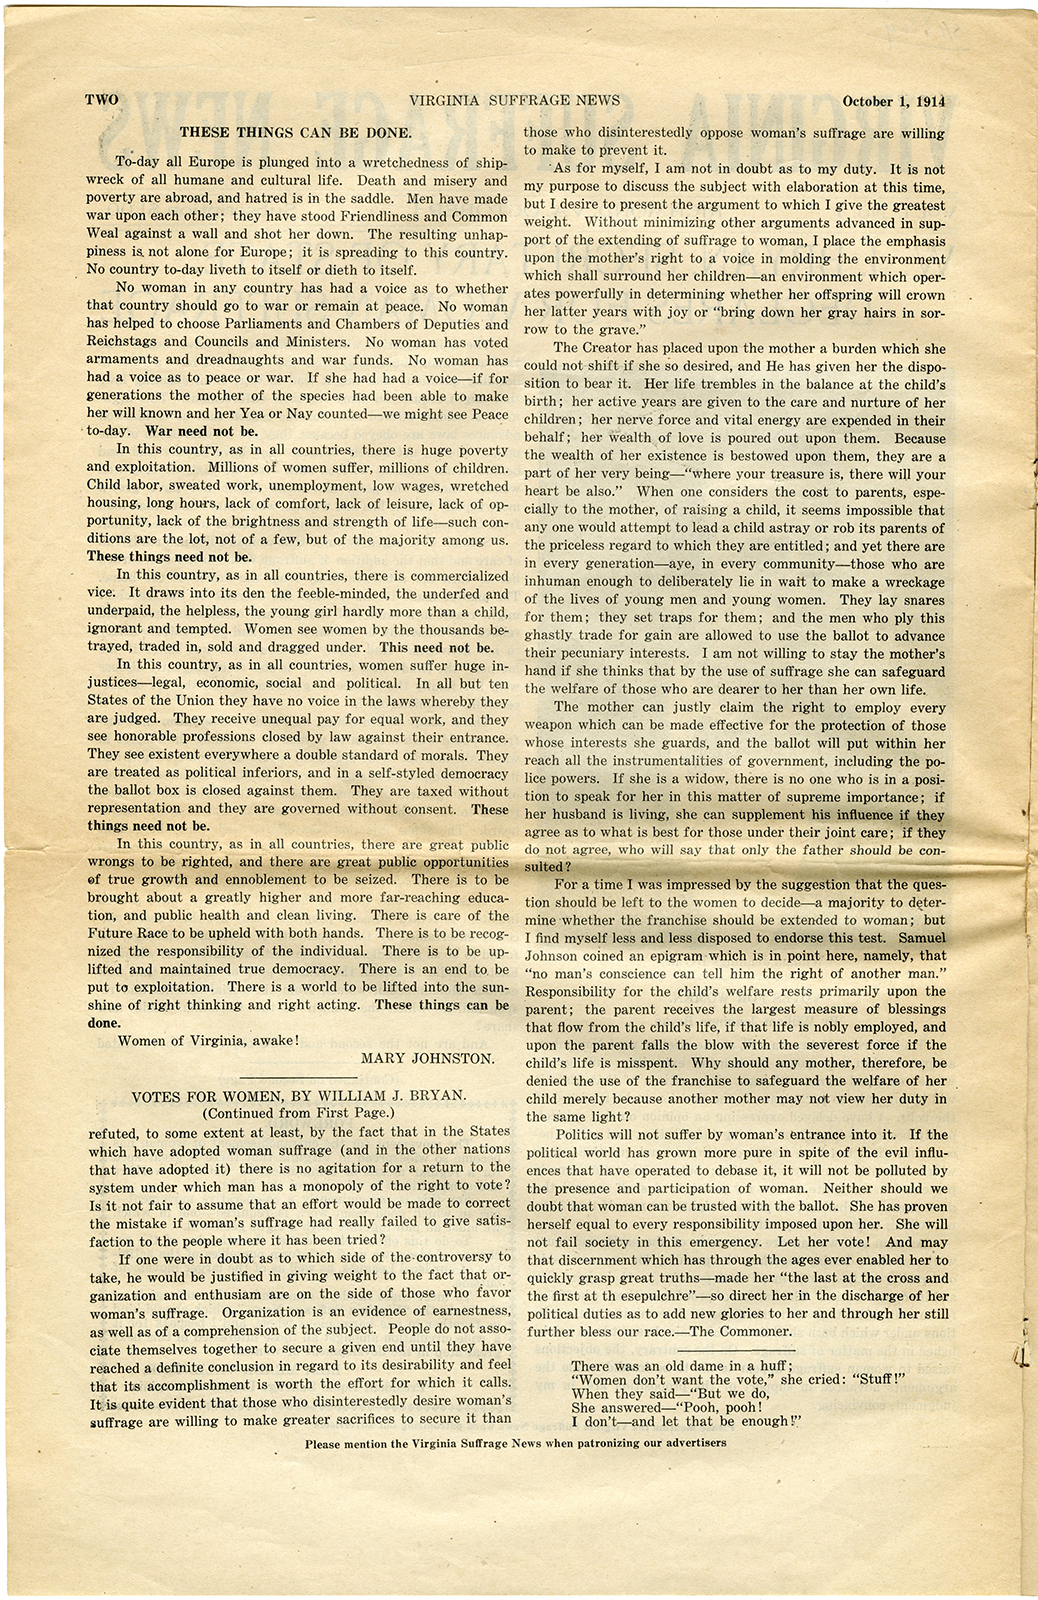 VCU_M9 B56 Virginia Suffrage News Oct 1 1914 p2 rsz.jpg